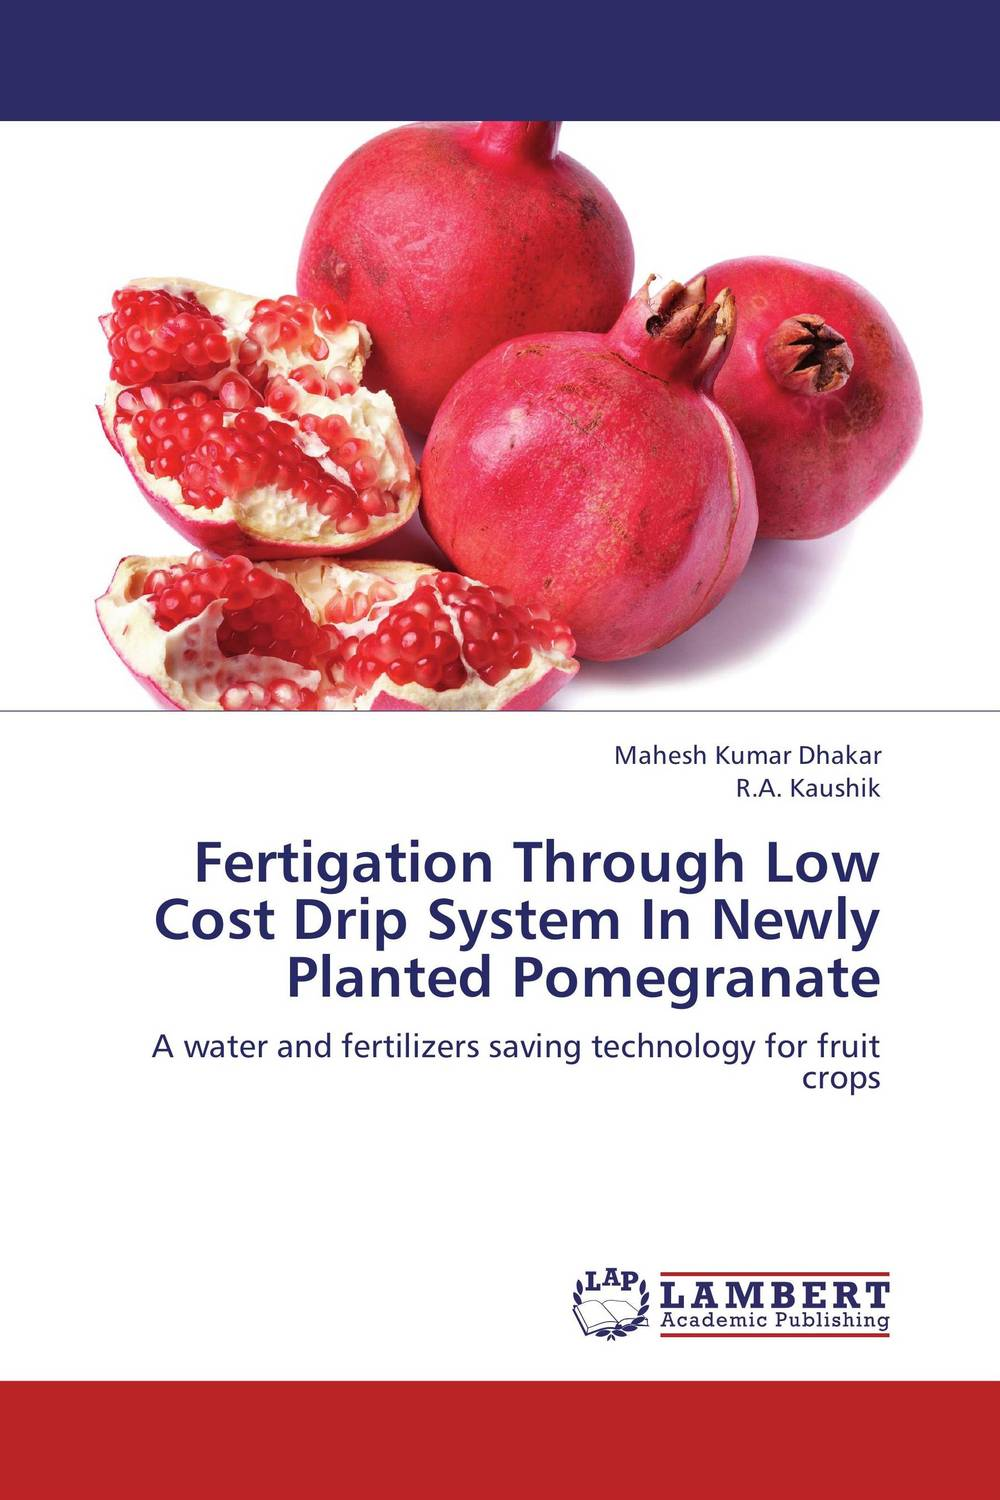 Fertigation Through Low Cost Drip System In Newly Planted Pomegranate system security through log analysis